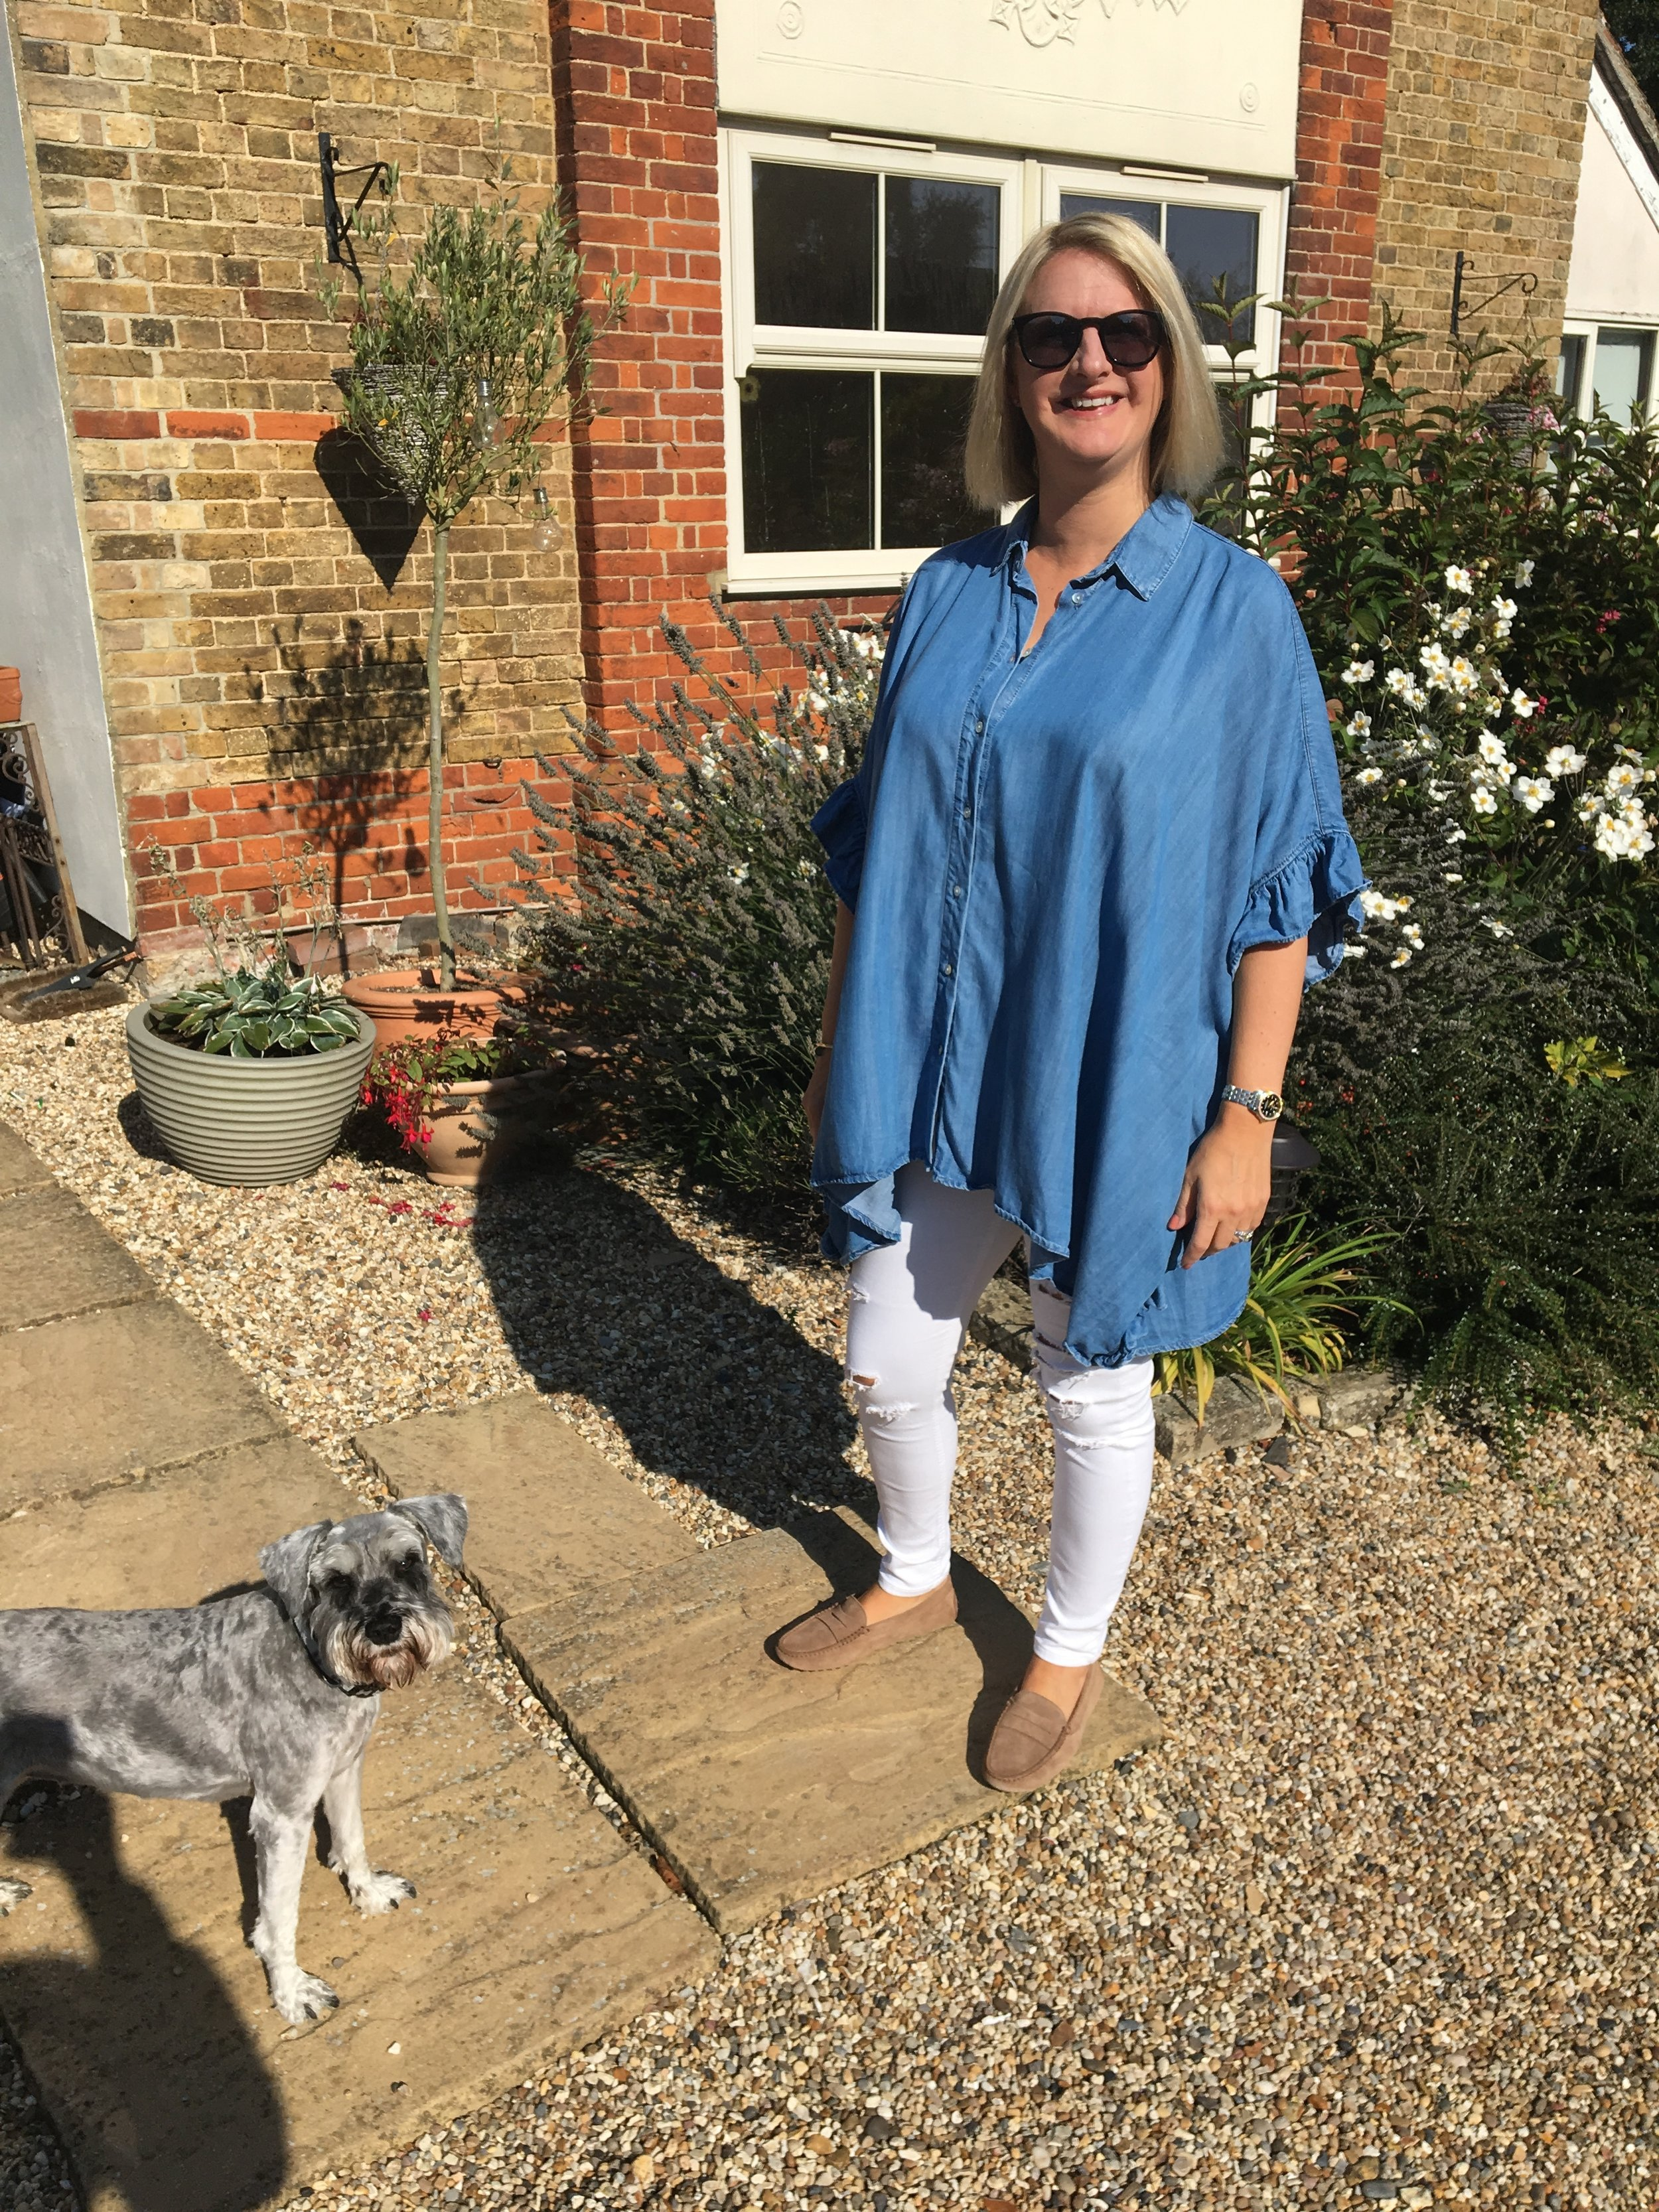 Devon bound. Top from Zara, Jeans from Topshop, Shoes from Tods, Dog all mine.